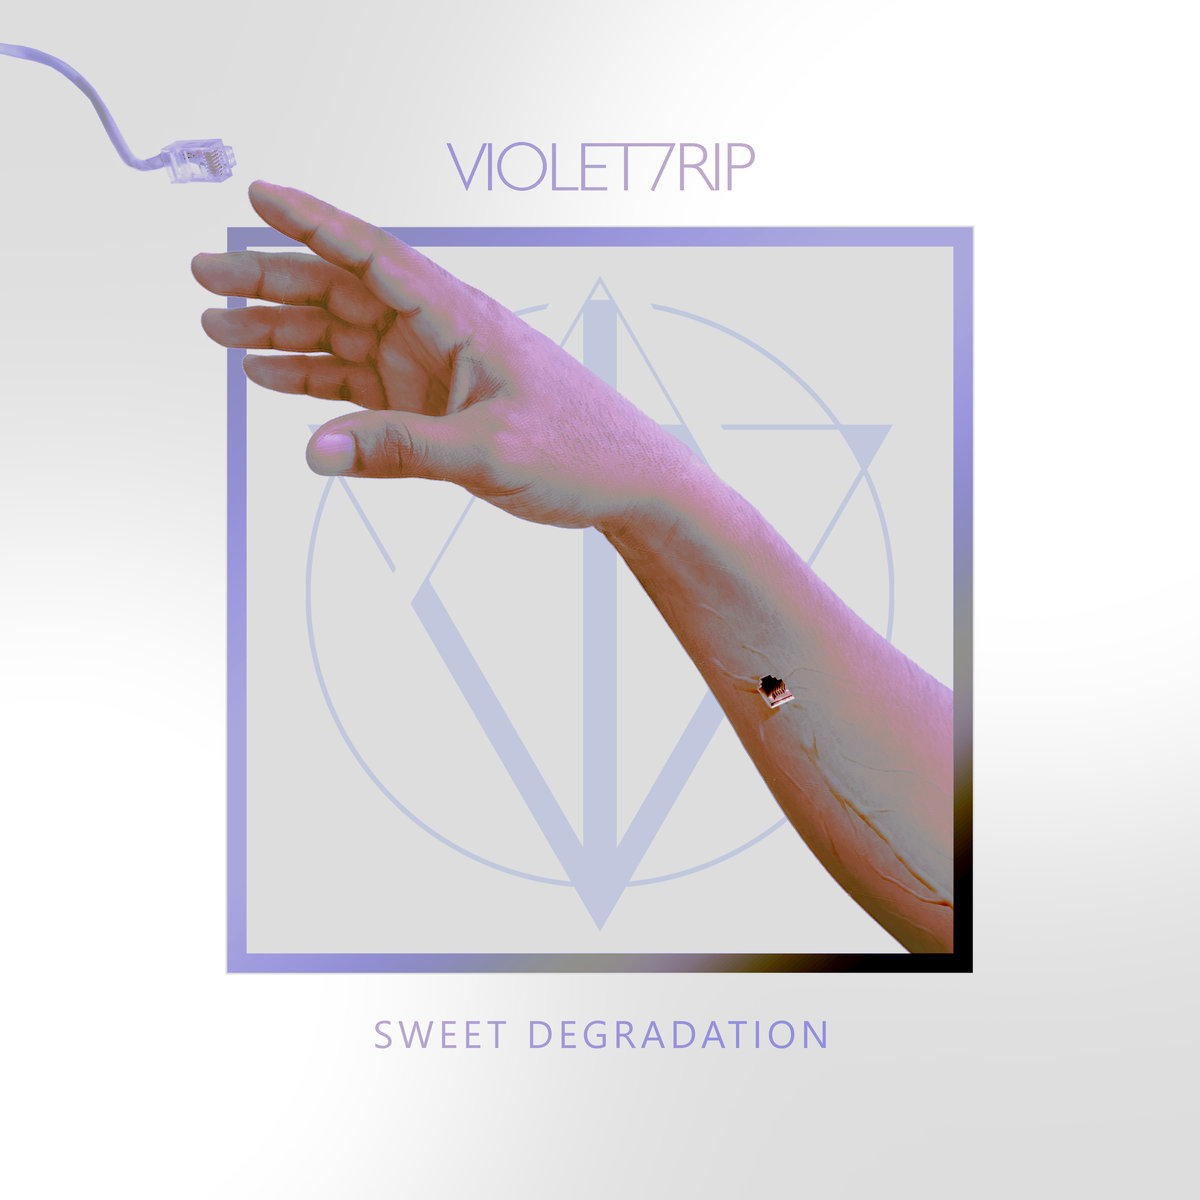 Violet7rip - Sweet Degradation